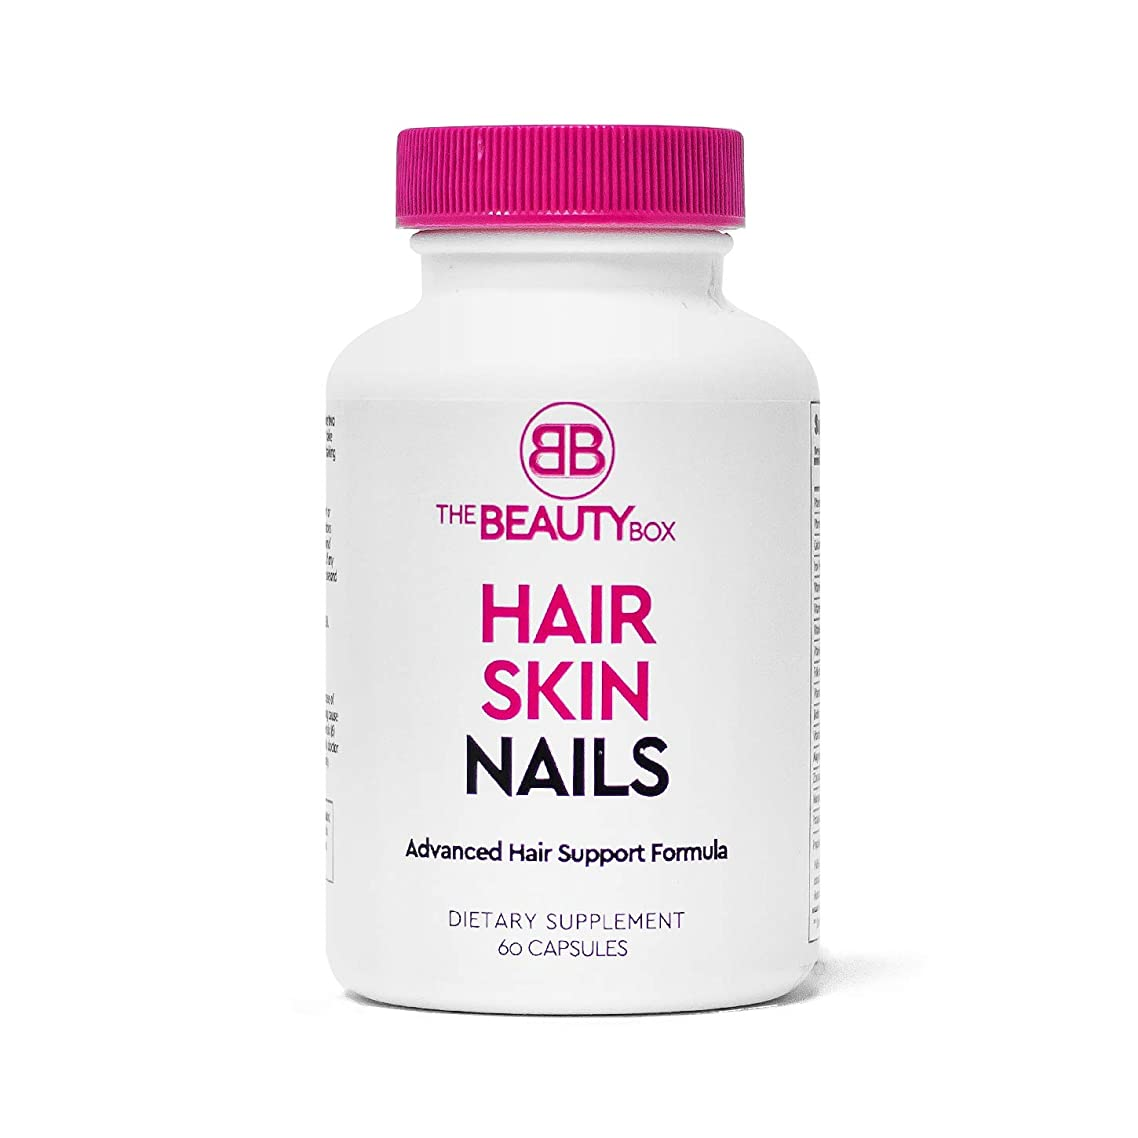 The Beauty Box Hair Skin and Nails Supplement with Biotin to Grow Faster Healthier, Thicker Hair and Strong Nails and Boost Glowing Skin, Helps Prevent Hair loss (1 pack)